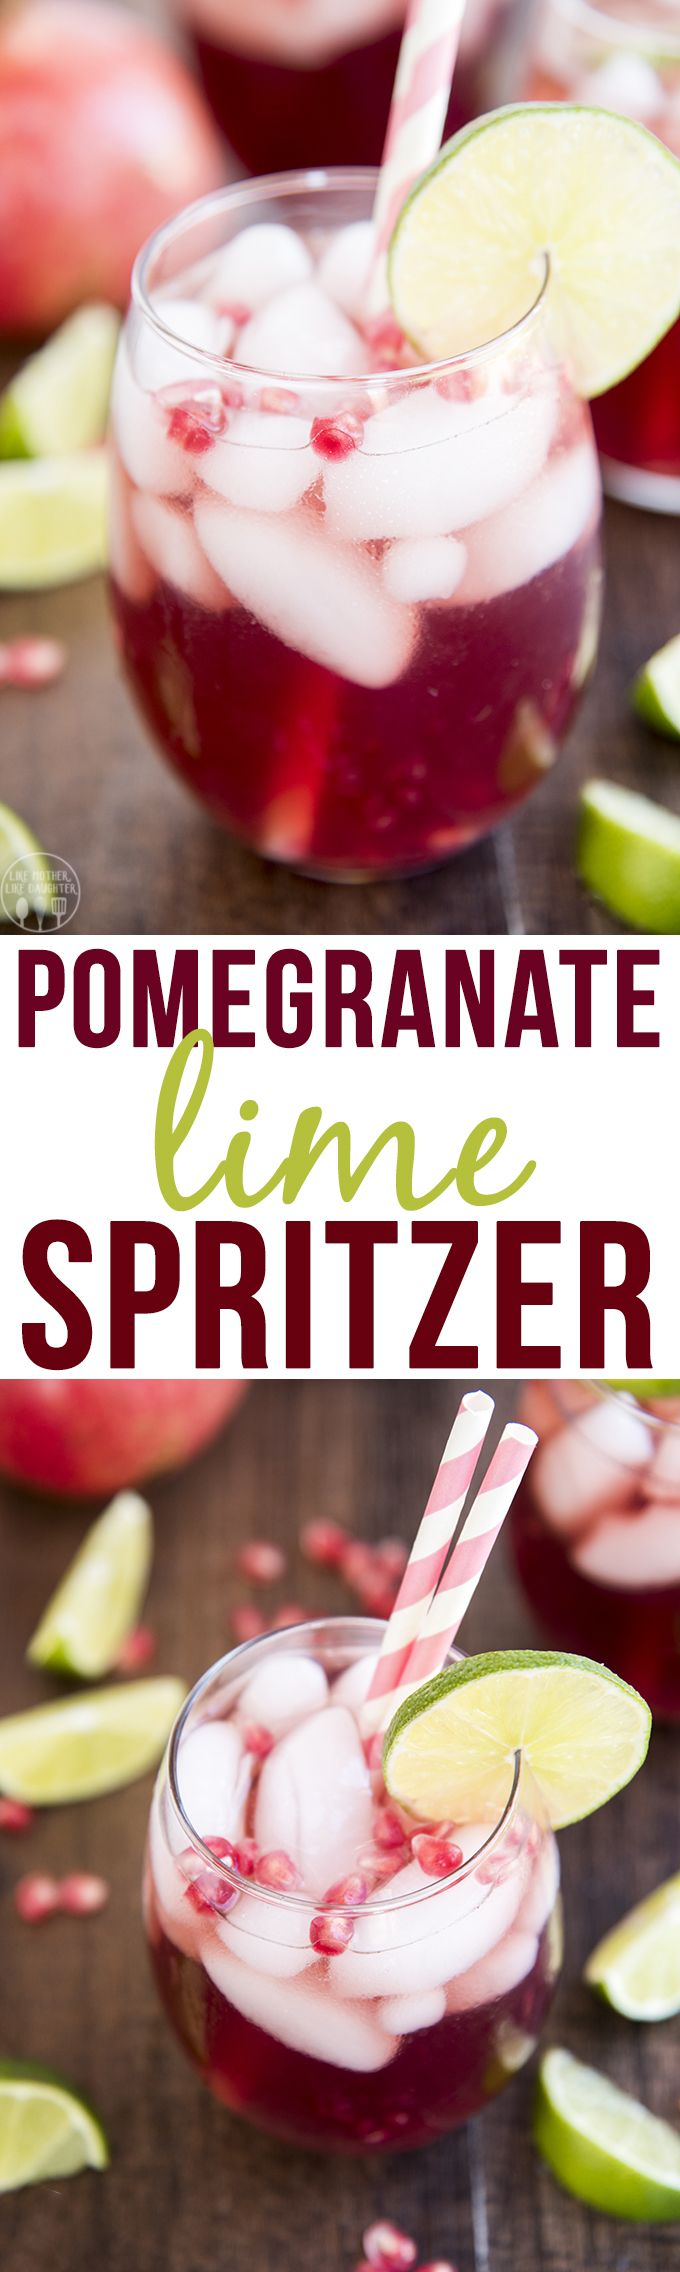 This Pomegranate Lime Spritzer is the perfect fall drink with minimal ingredients! Perfect for an easy and festive drink for the holidays! **This pomegranate lime spritzer is made are made using SPLENDA® Naturals as part of a sponsored post for Socialstars #SplendaSweeties #SweetSwaps #SplendaSavvies All opinions are my own. It is the season of pomegranates, and I usually...Read More »